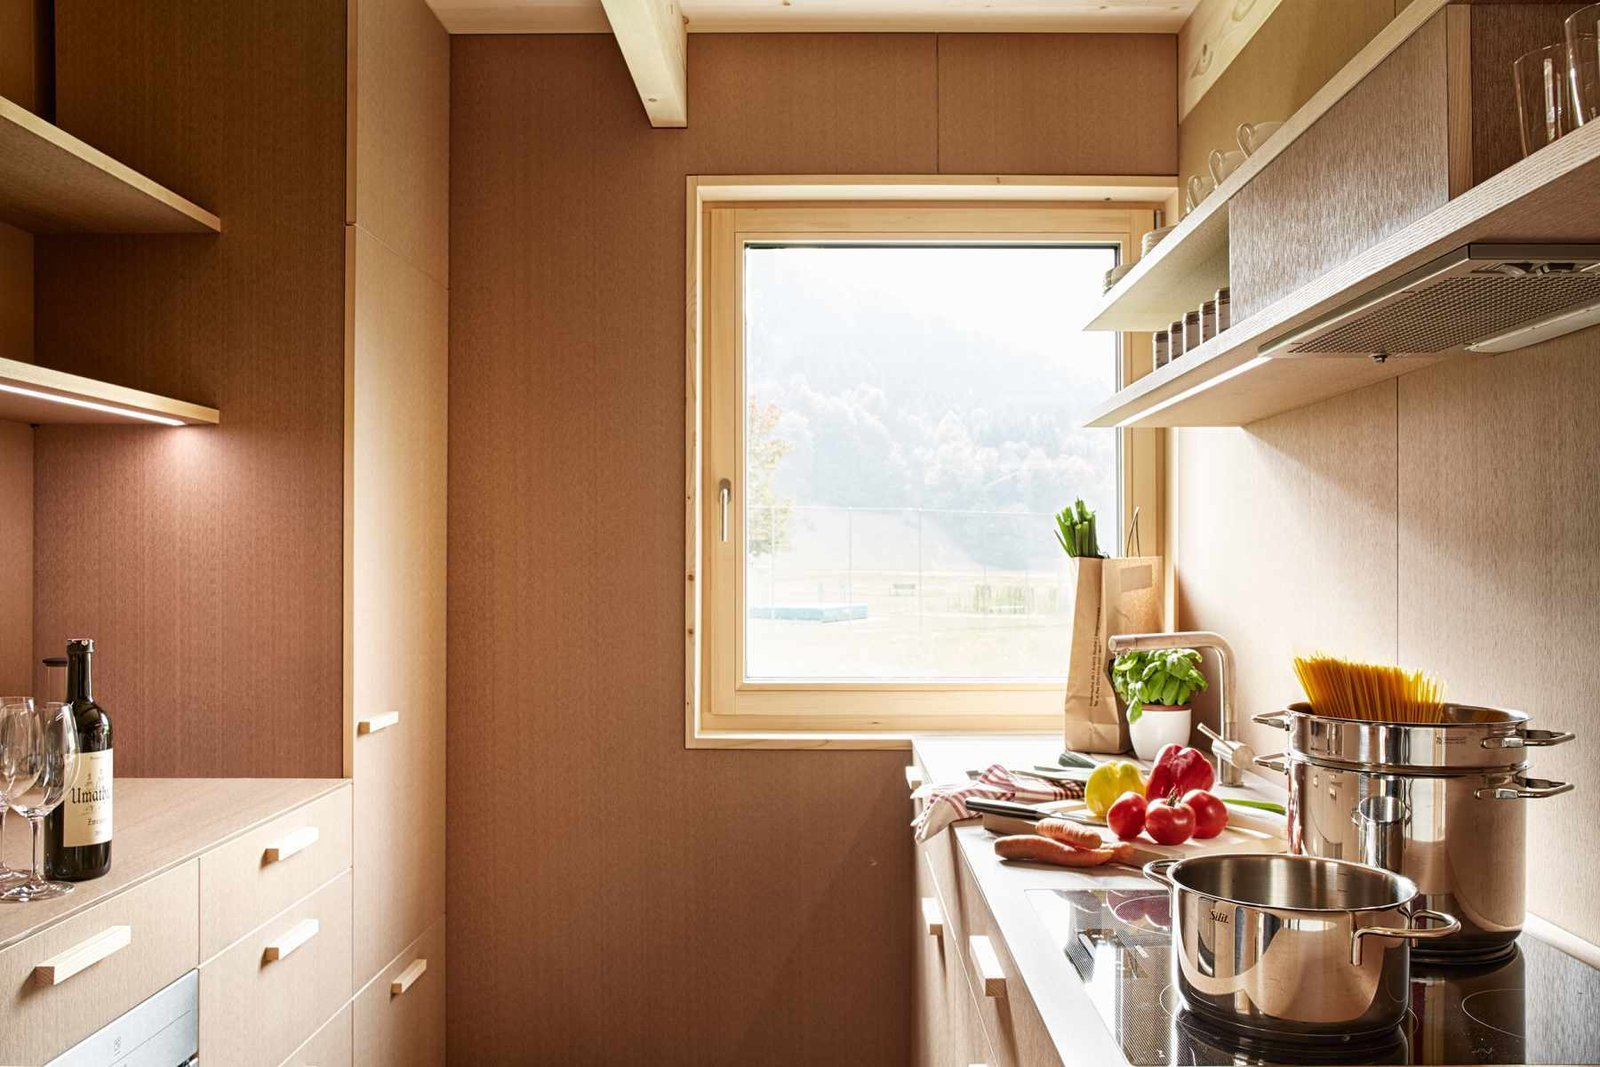 Kitchen, Cooktops, Wood, and Accent  Best Kitchen Cooktops Accent Photos from Ferienhaus Islen